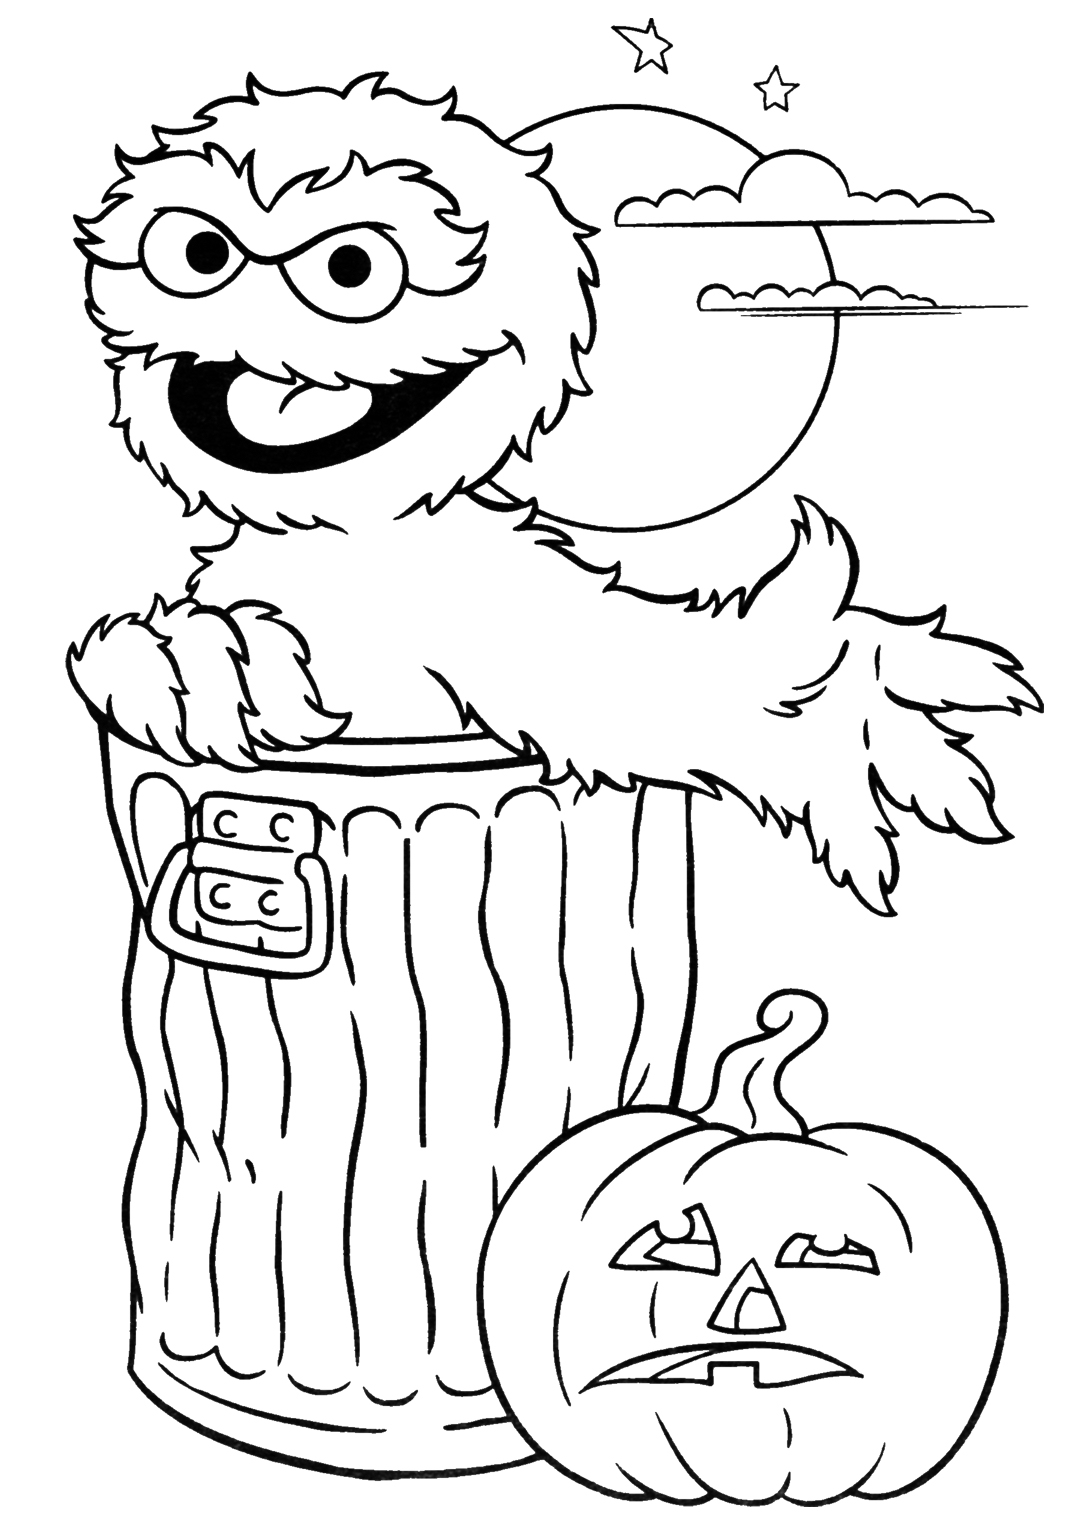 halloween print out coloring pages halloween printable coloring pages minnesota miranda